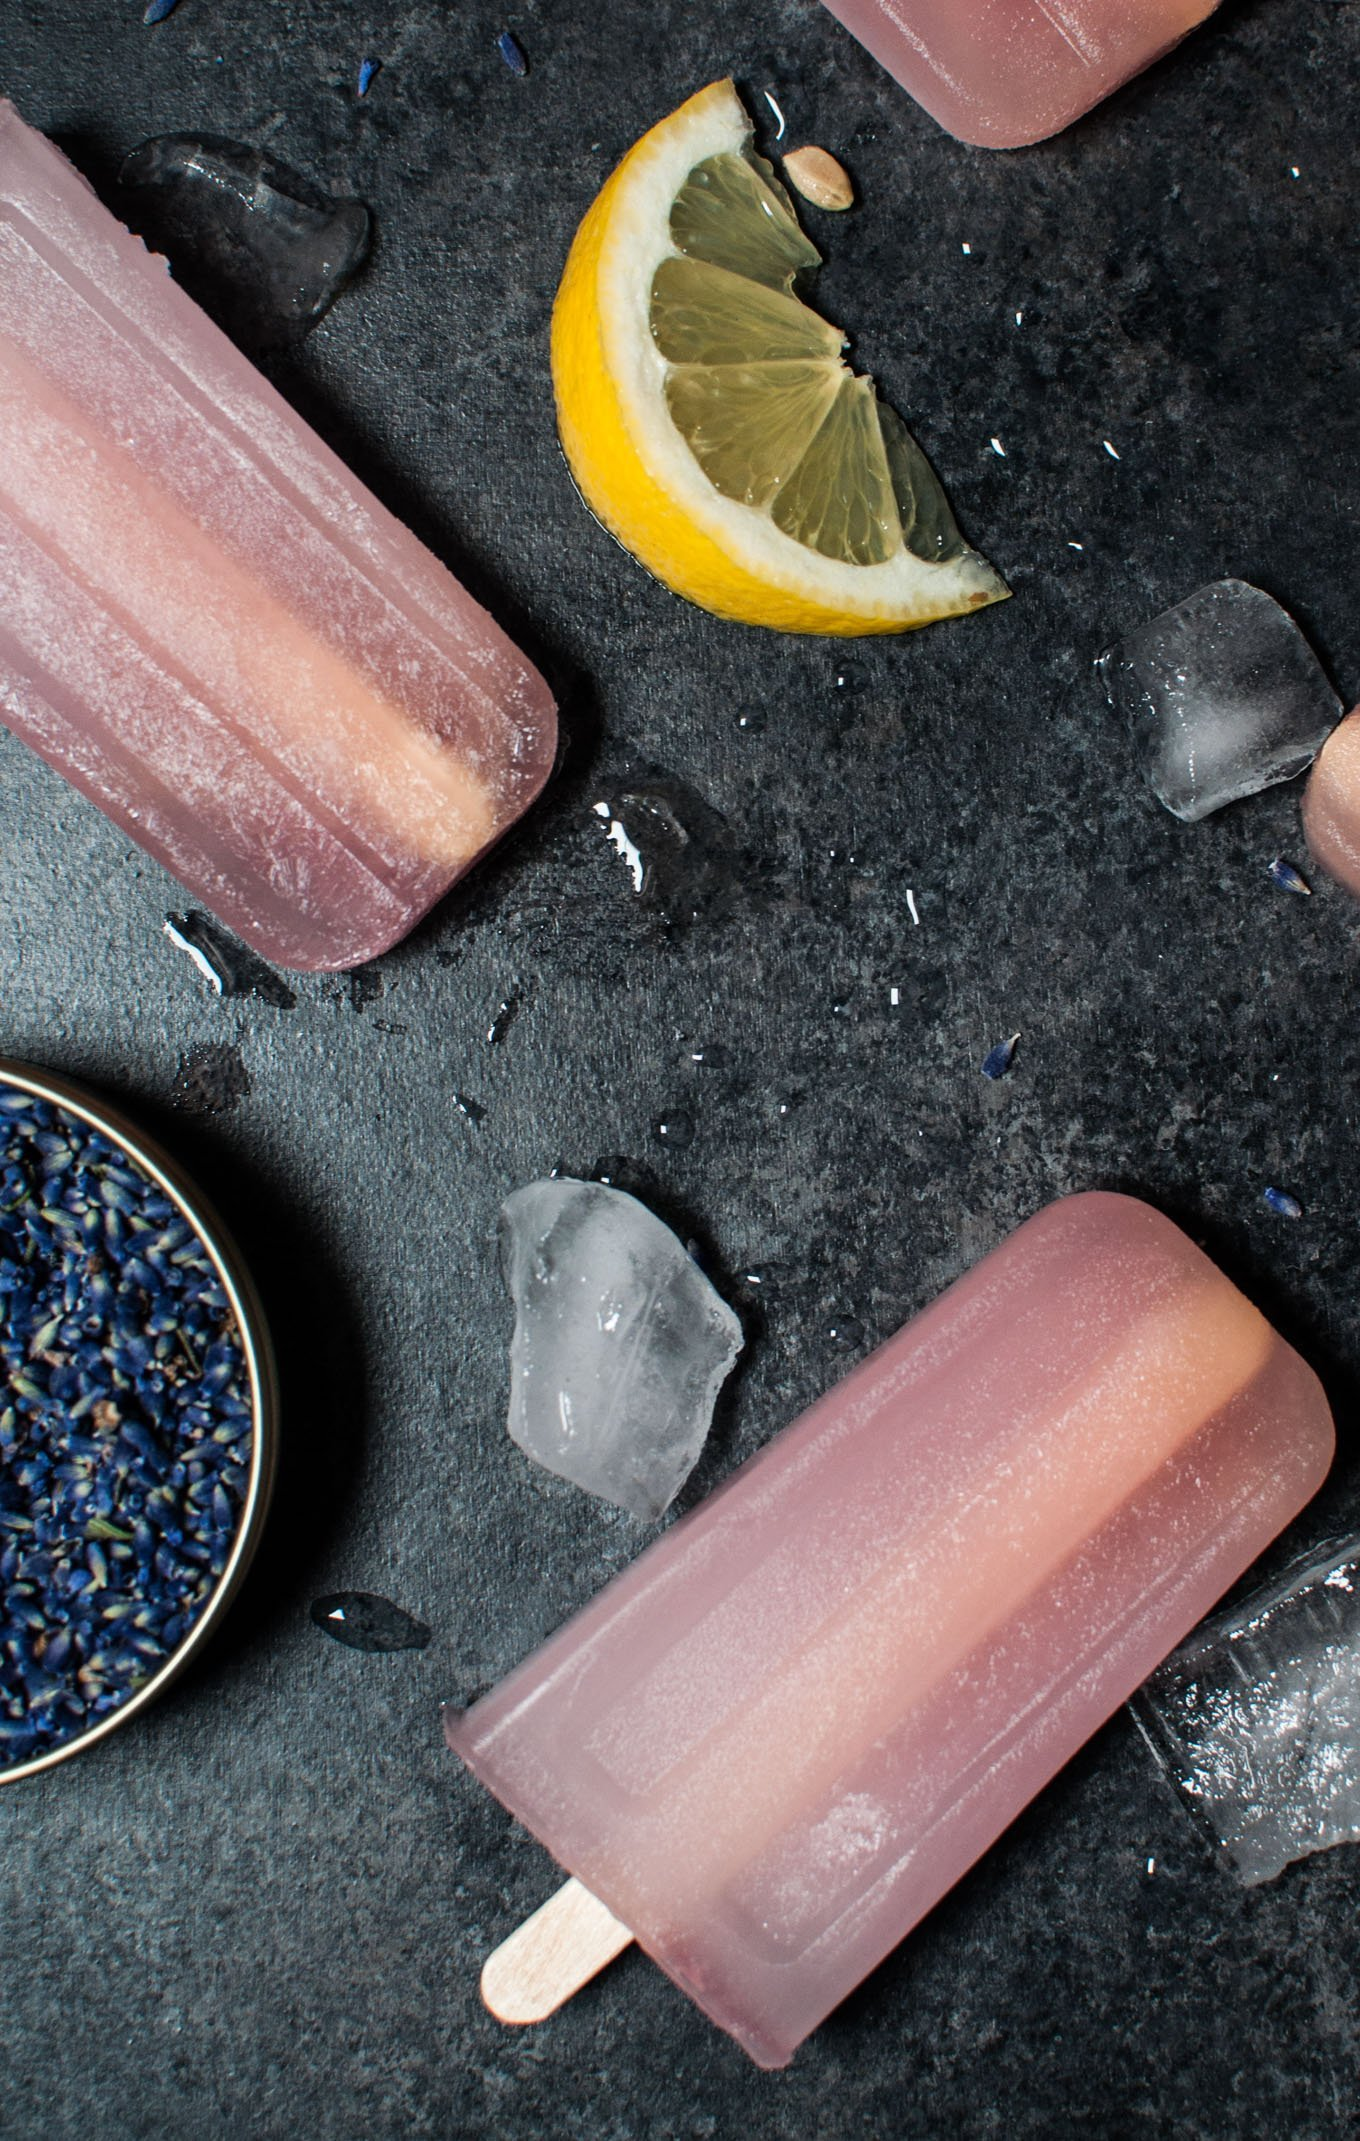 Lavender Lemonade Popsicles - These sound ALMOST too good to eat! | www.ashleybrookedesigns.com